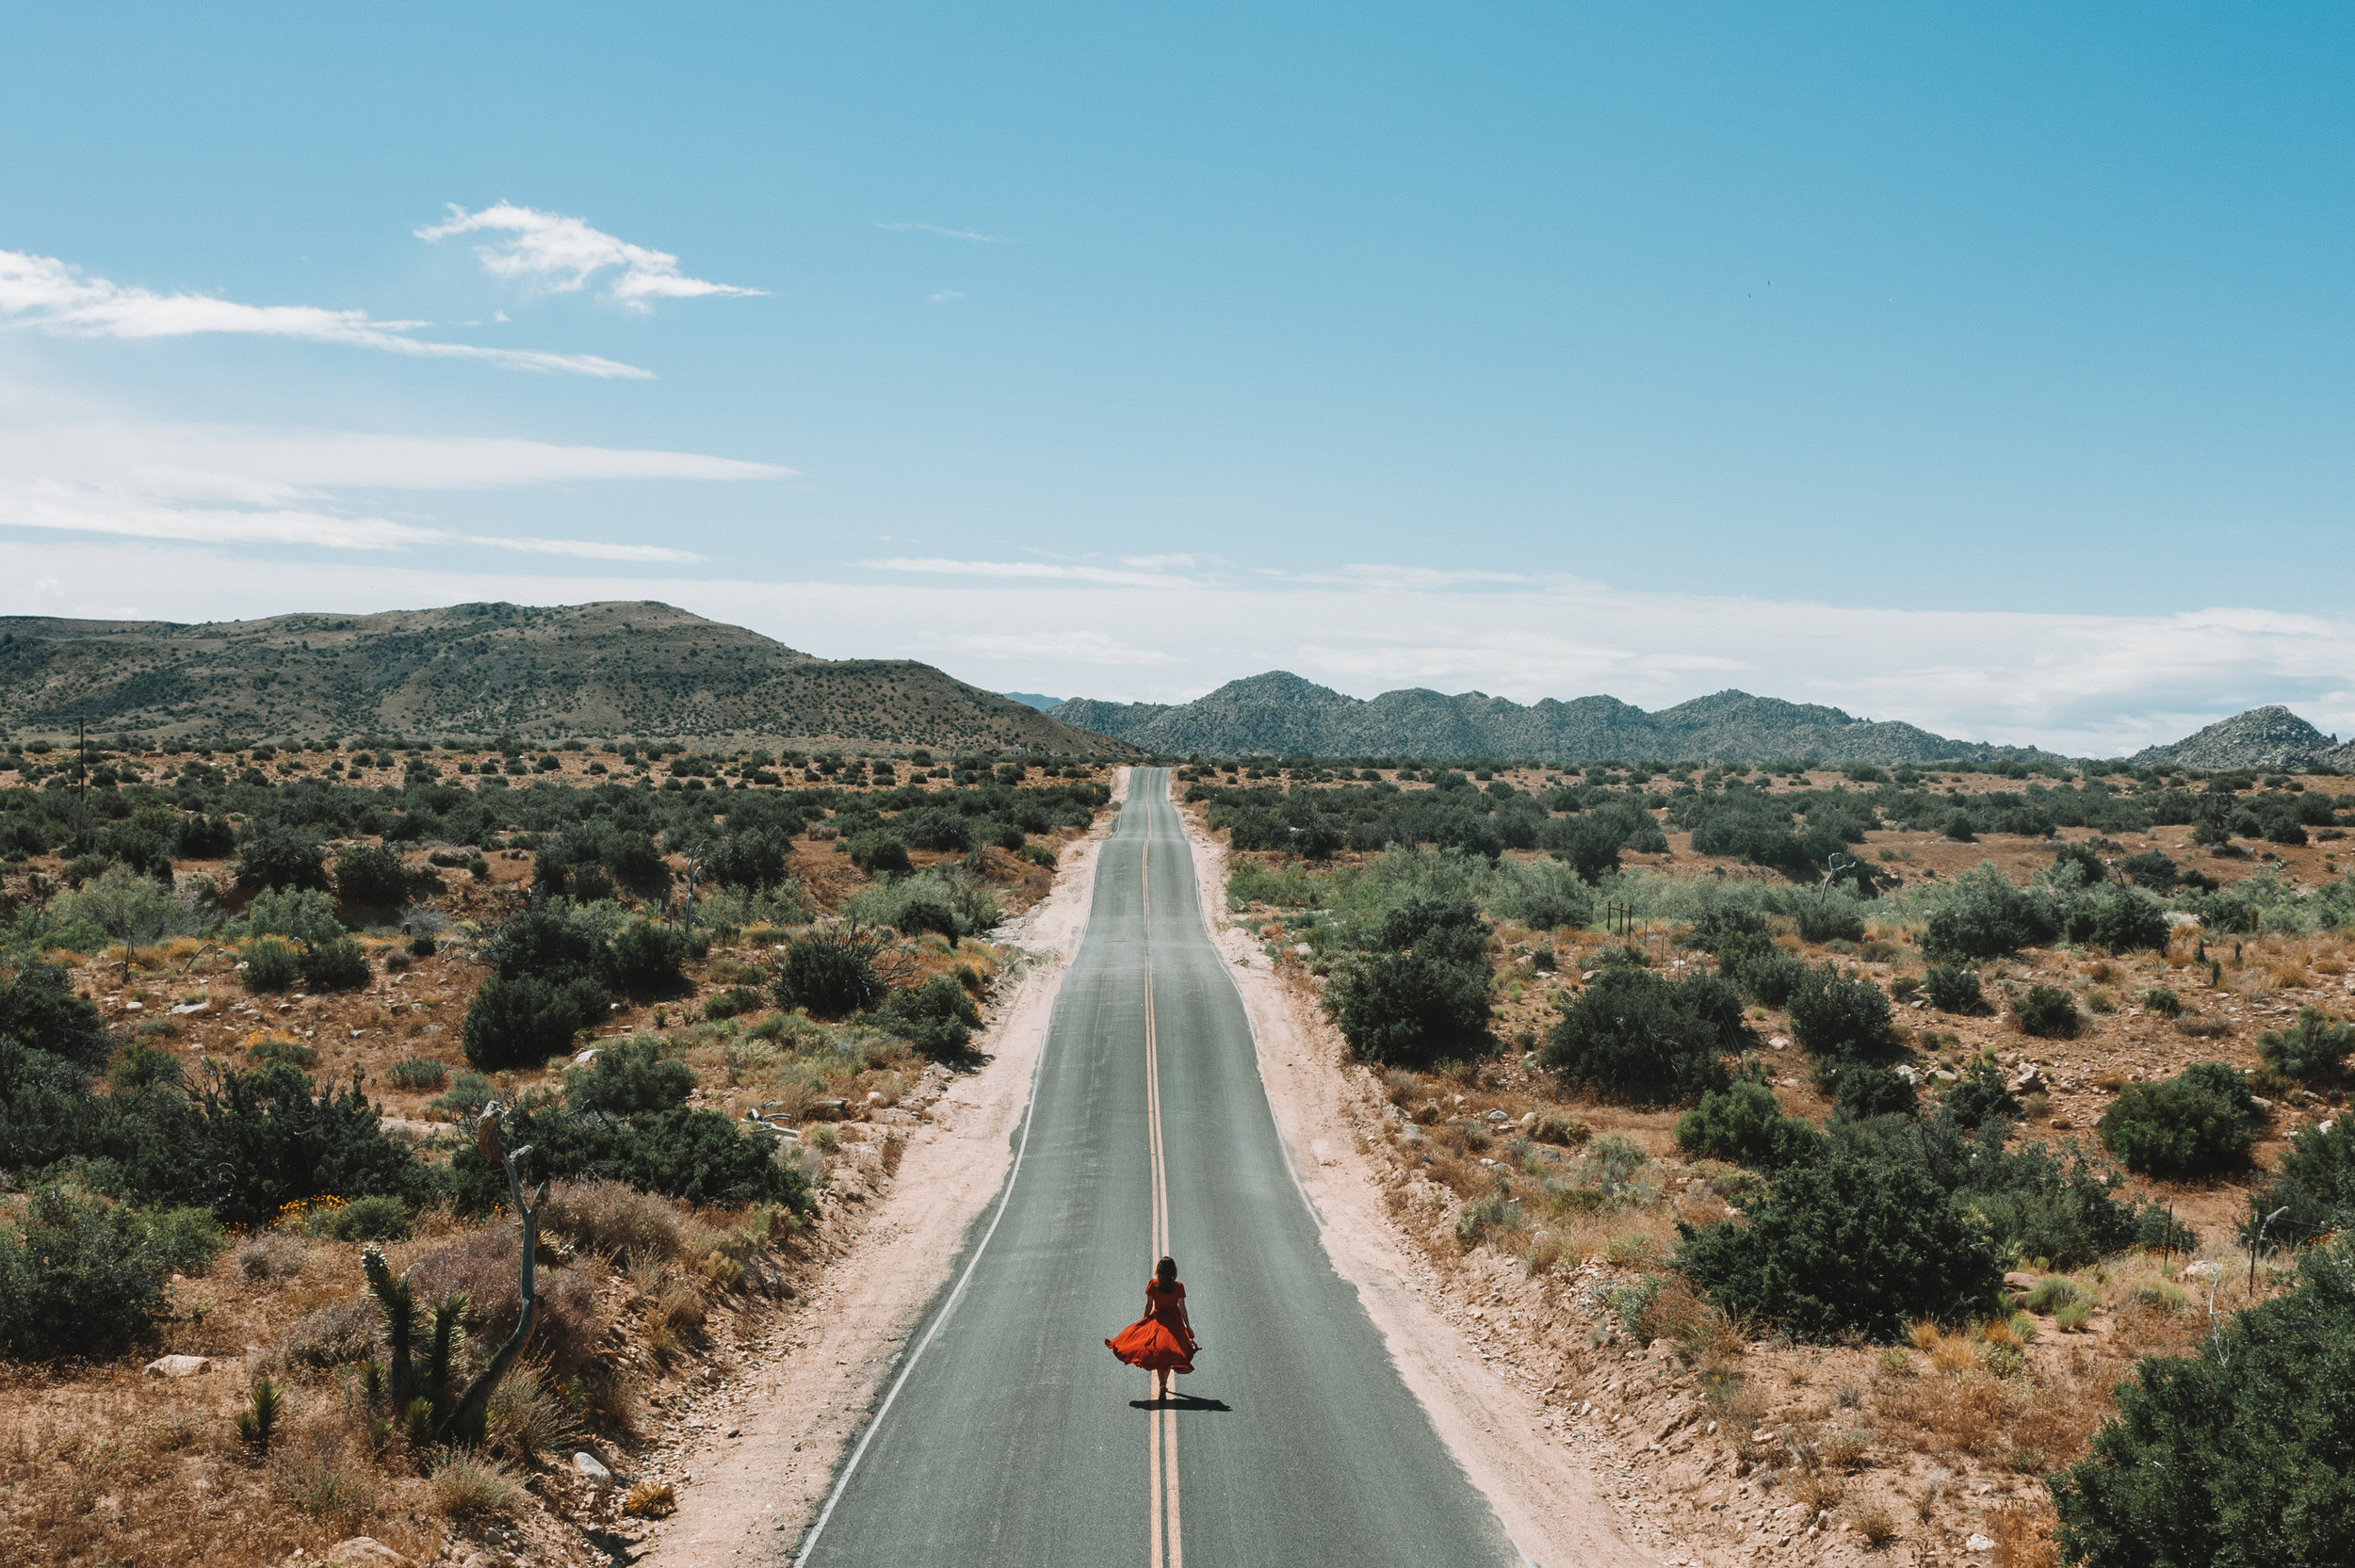 One of the roads on the way to Pioneertown